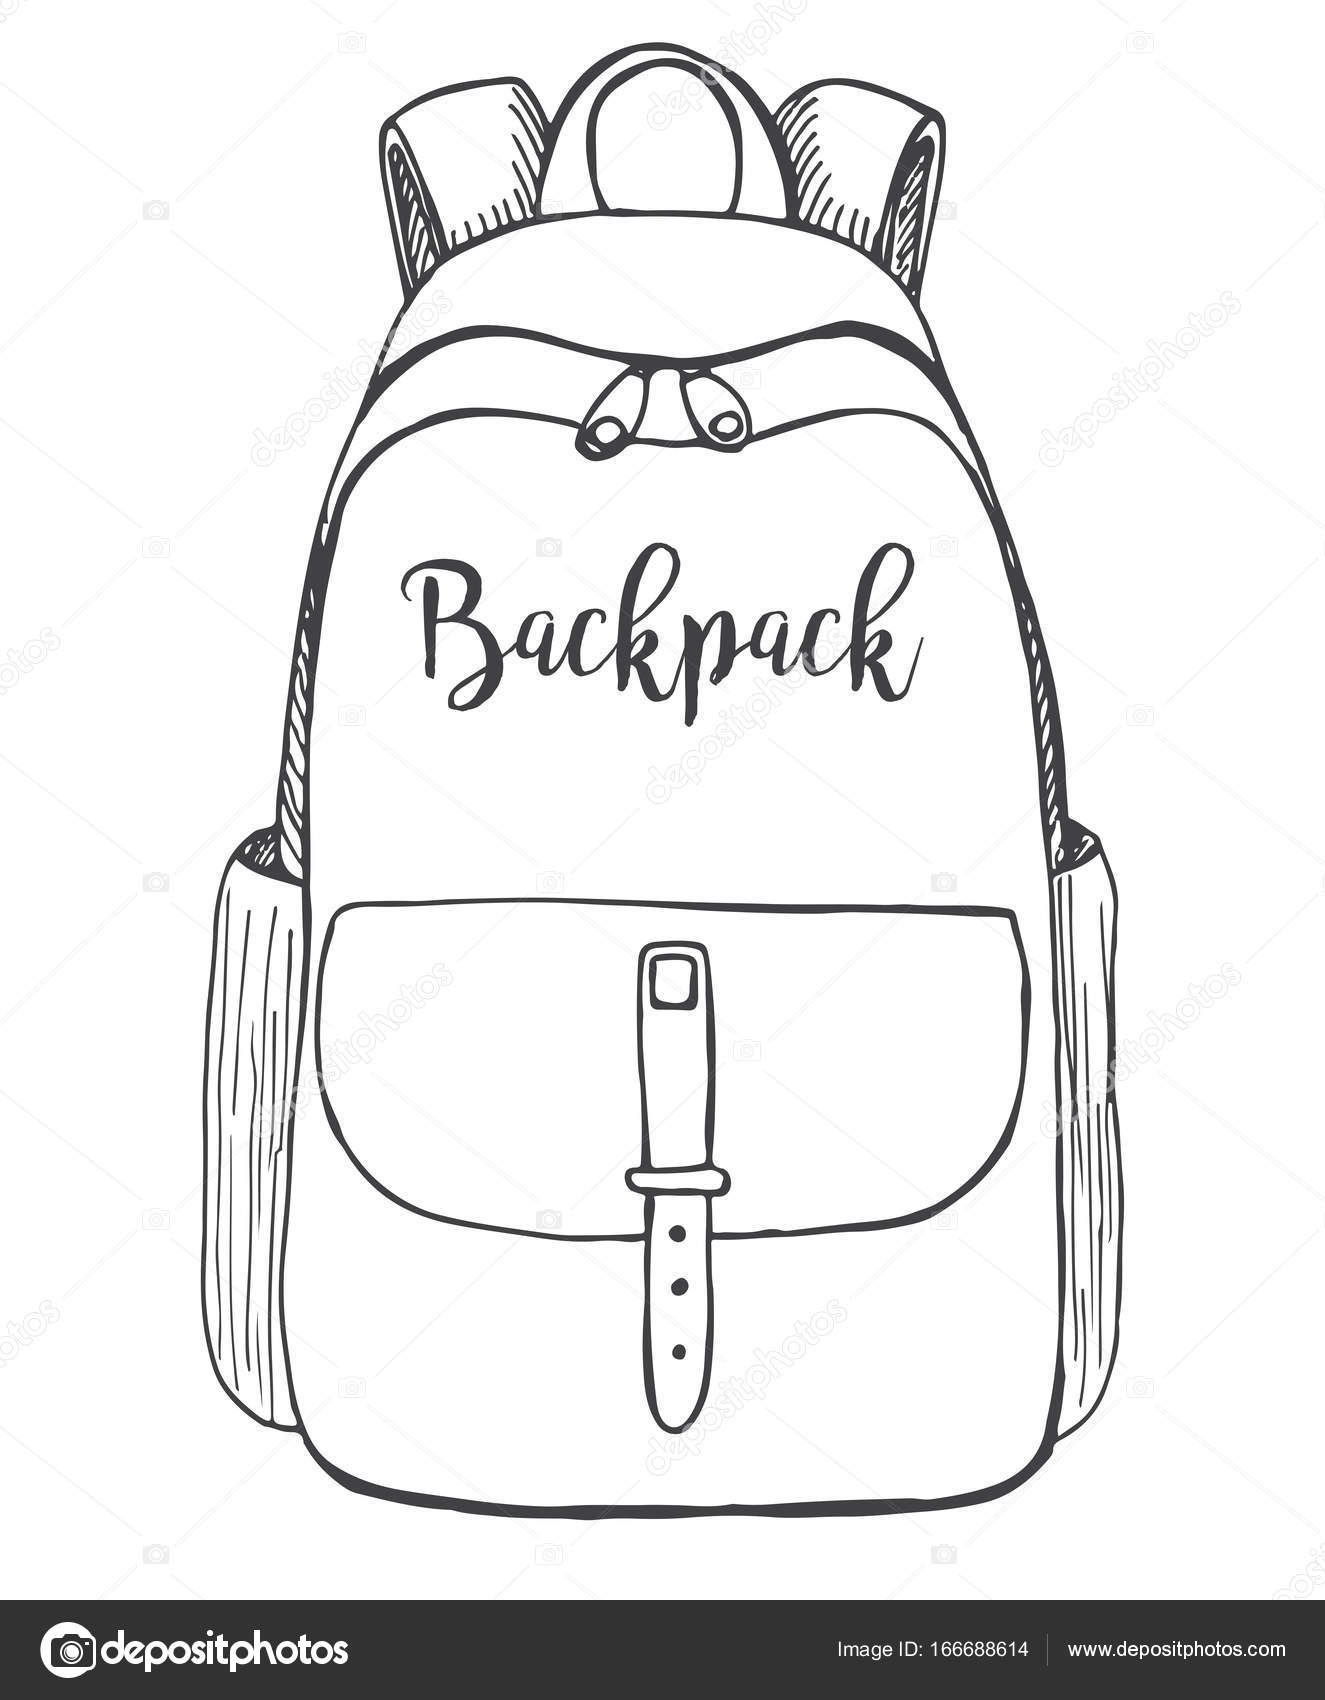 98ec3e658c9 Sketch of a rucksack. Backpack isolated on white background. Vector  illustration of a sketch style. — Vector by nadiia.kud.gmail.com